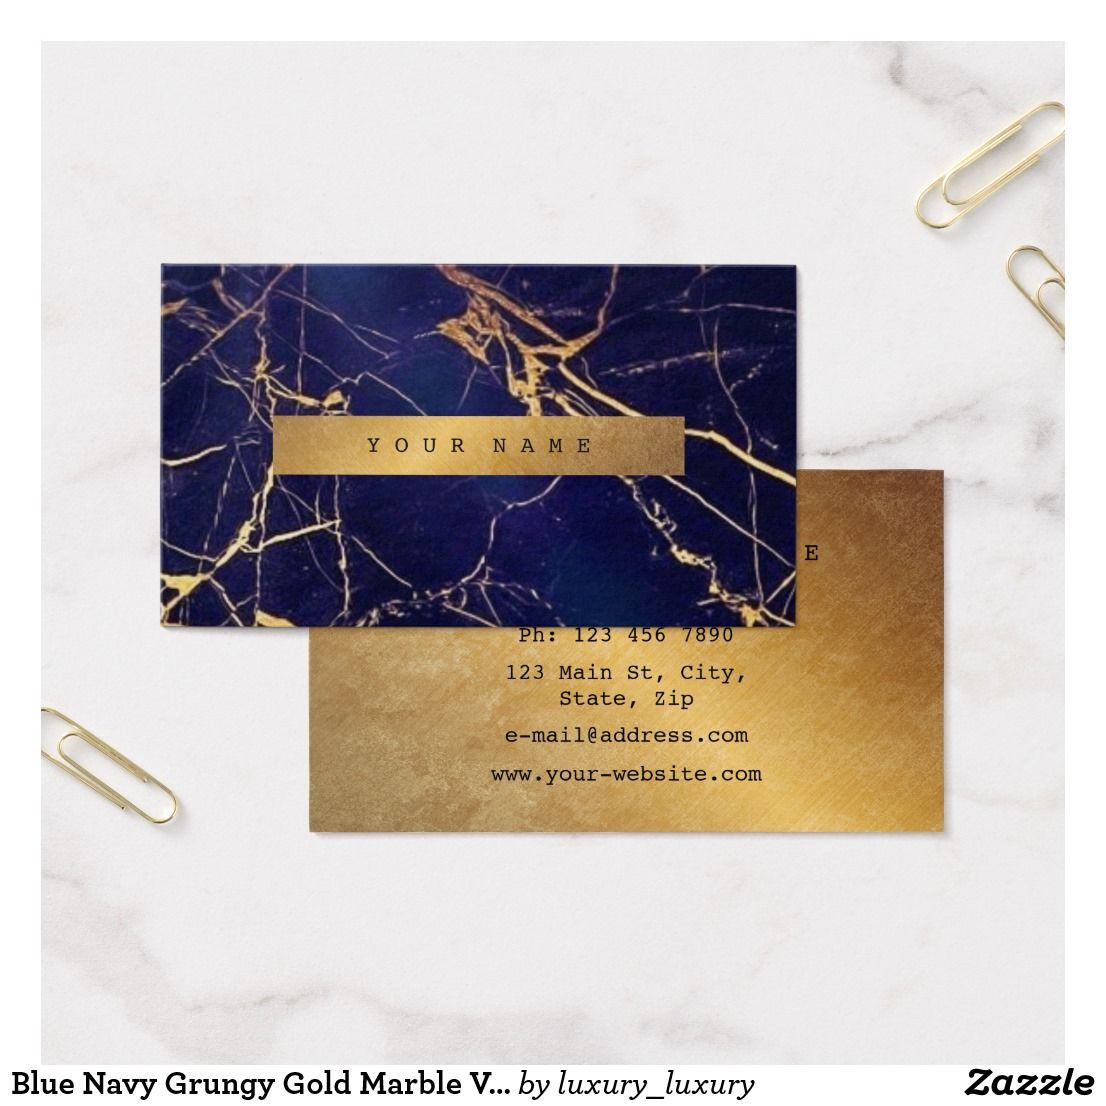 Blue Navy Grungy Gold Marble Vip Business Card | Gold marble and ...